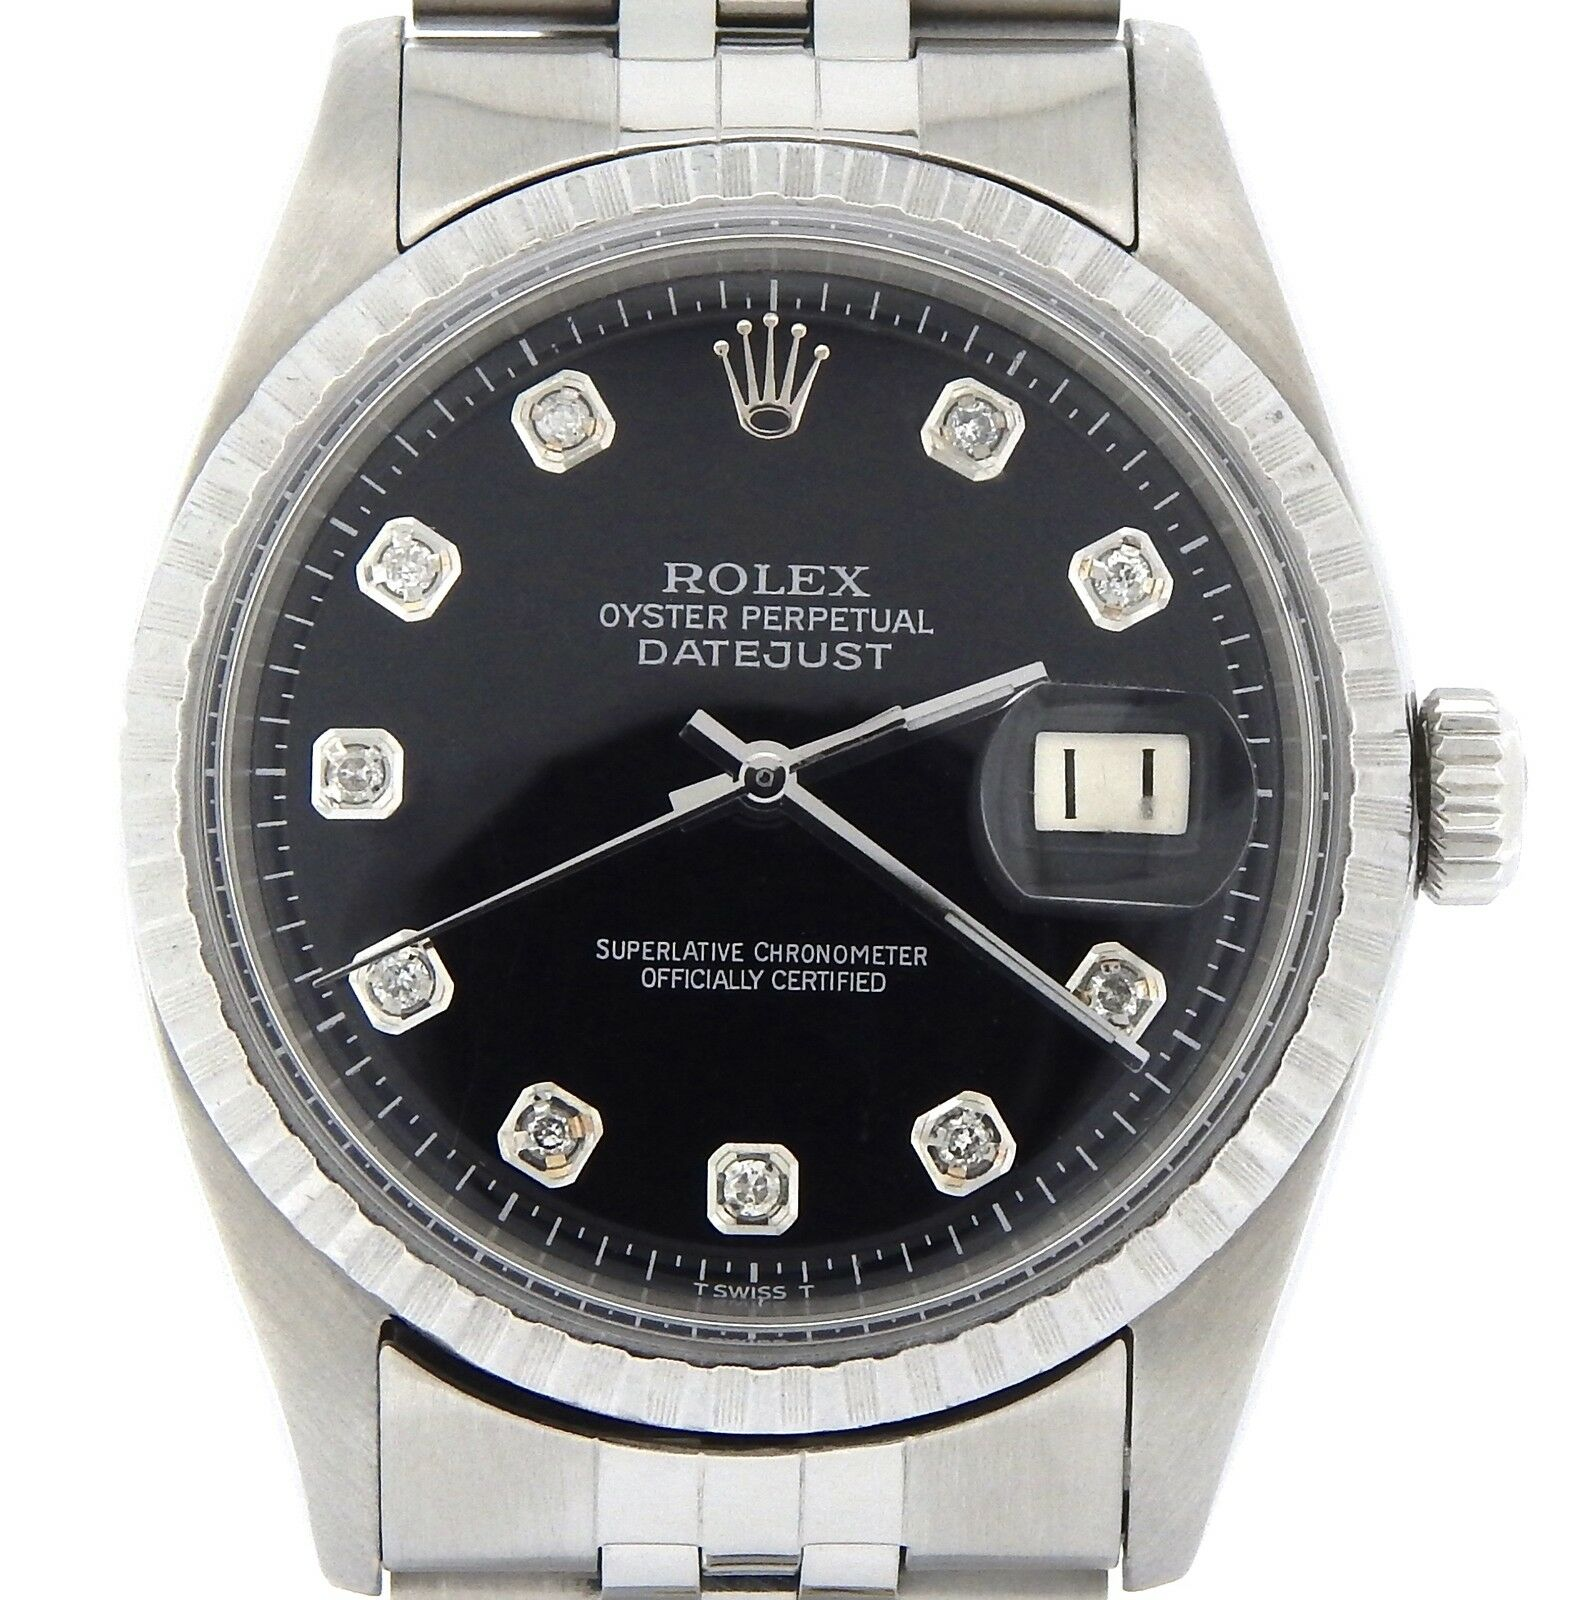 $2799.98 - Rolex Datejust Mens SS Stainless Steel Jubilee Black Diamond Dial Watch 1603